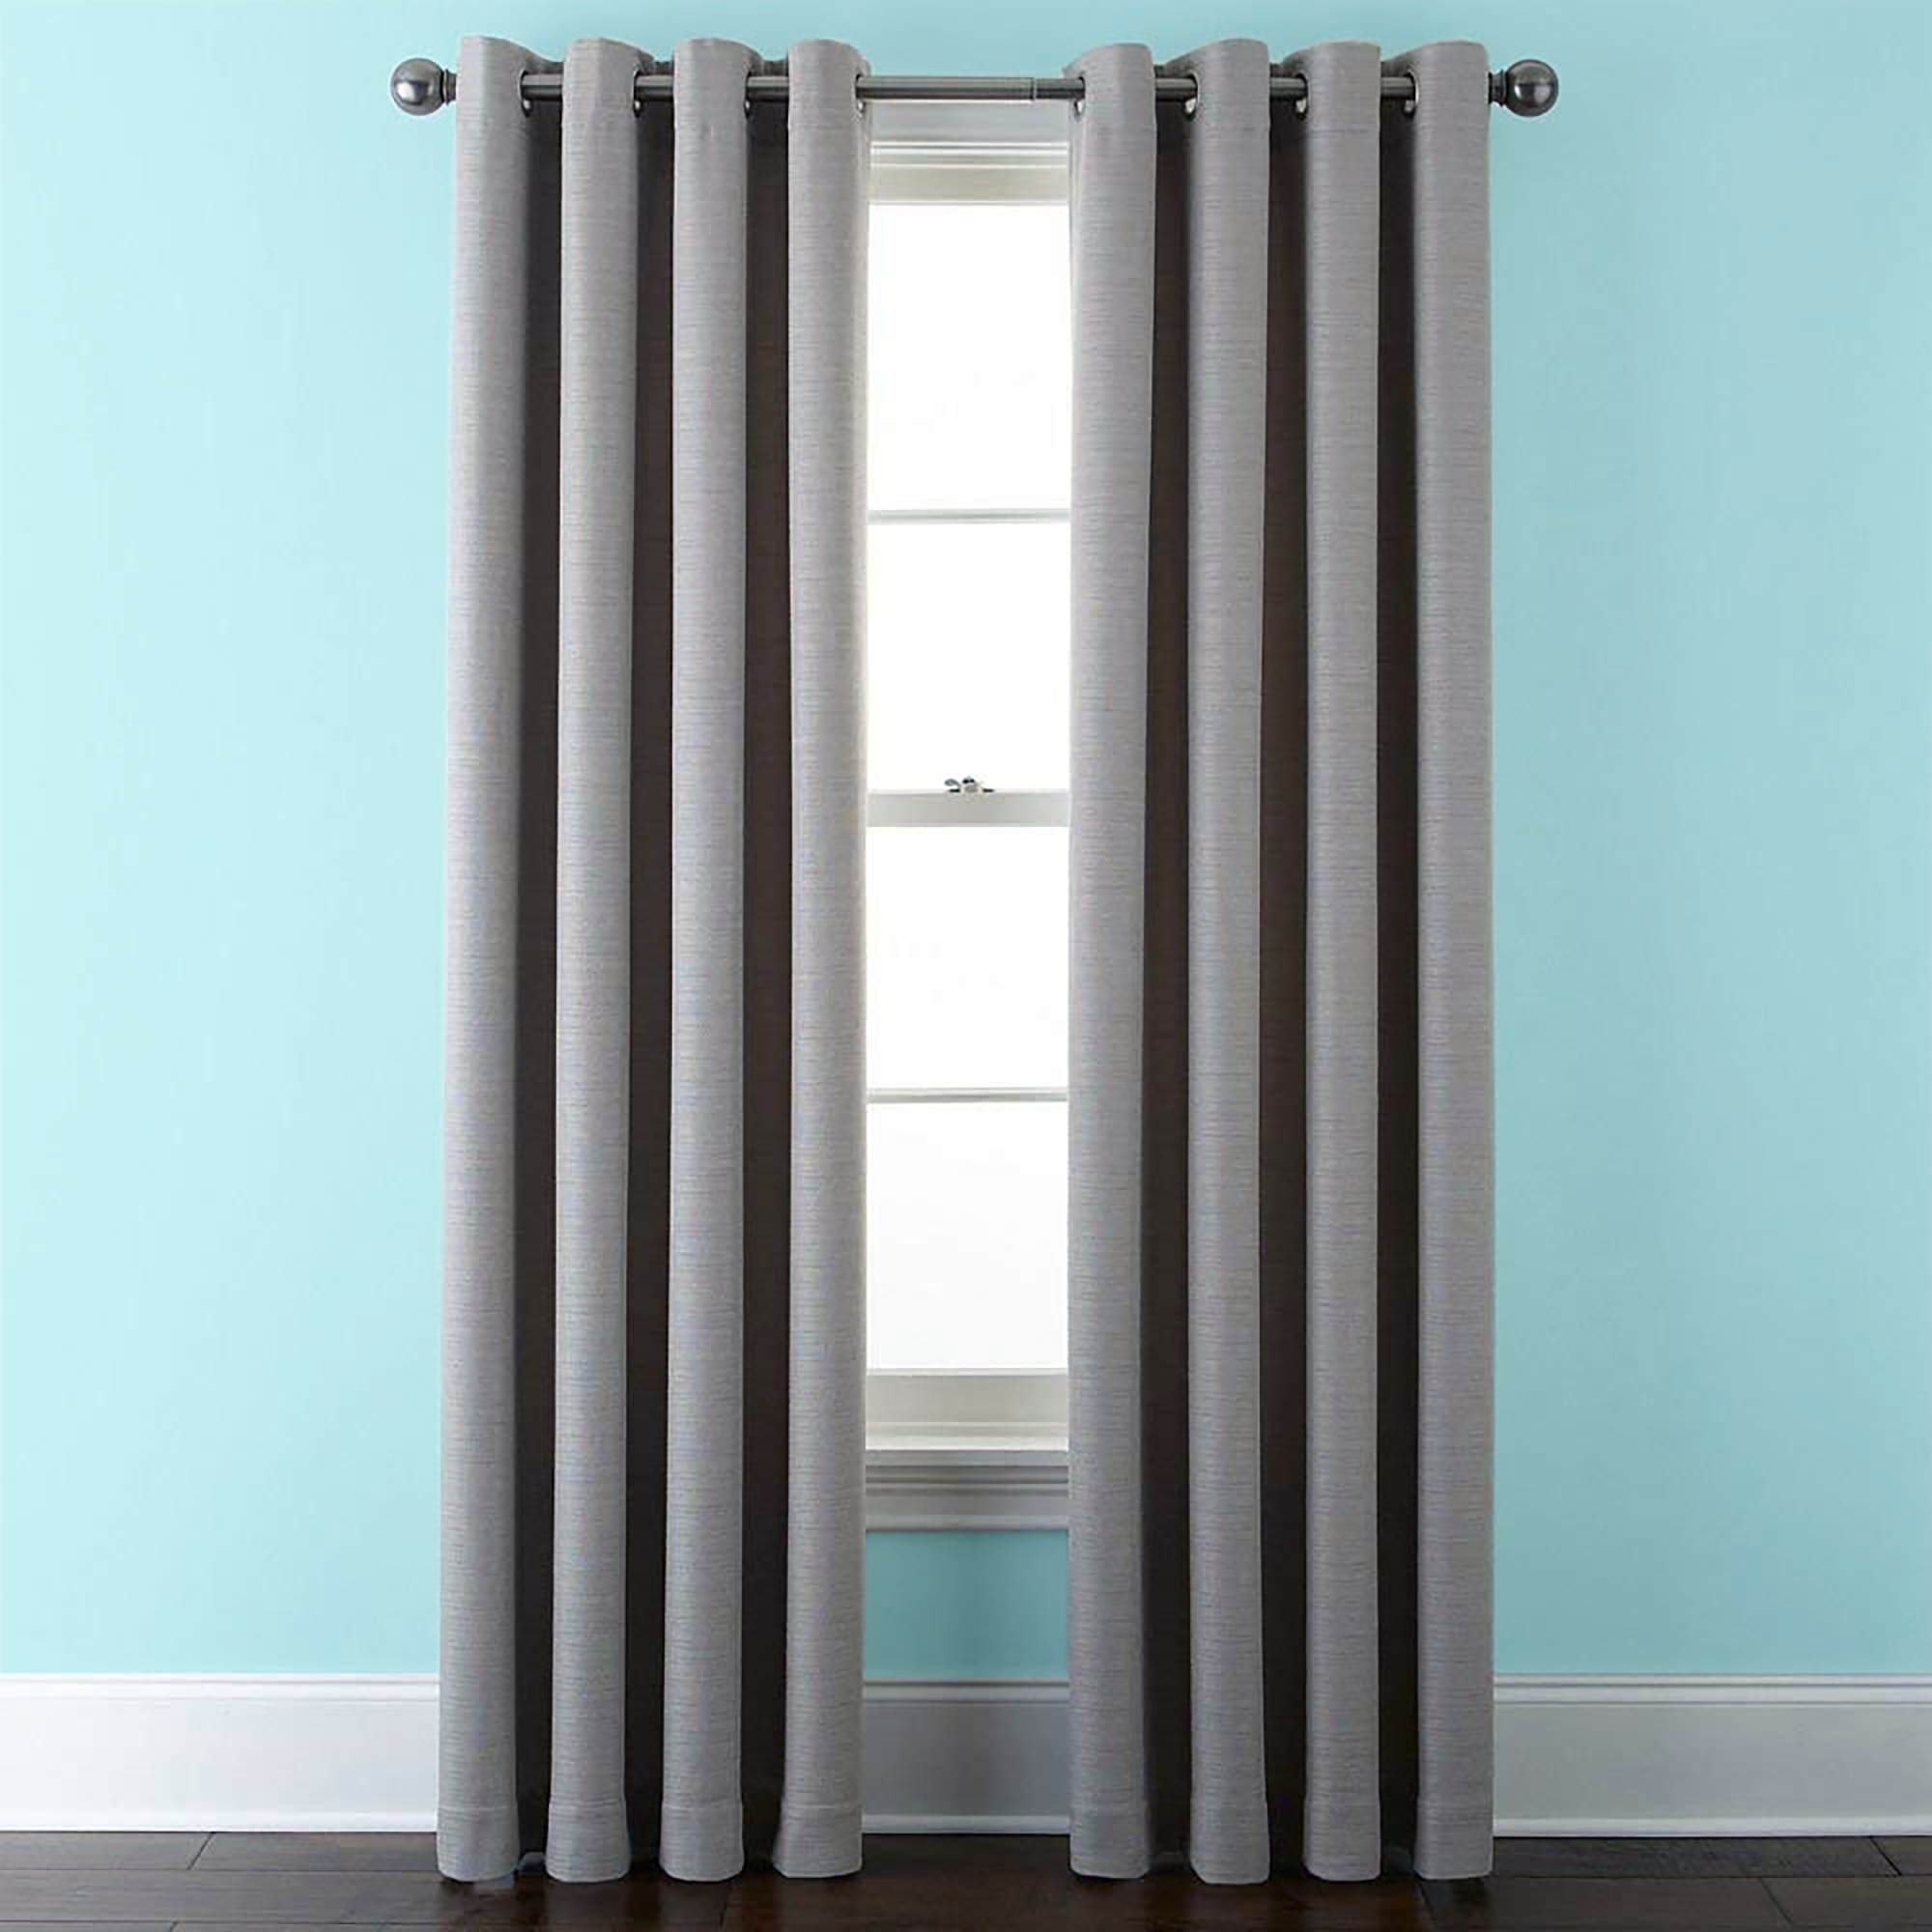 6 Best Blackout Curtains Of 2020 Blackout Shades For Light Sleepers